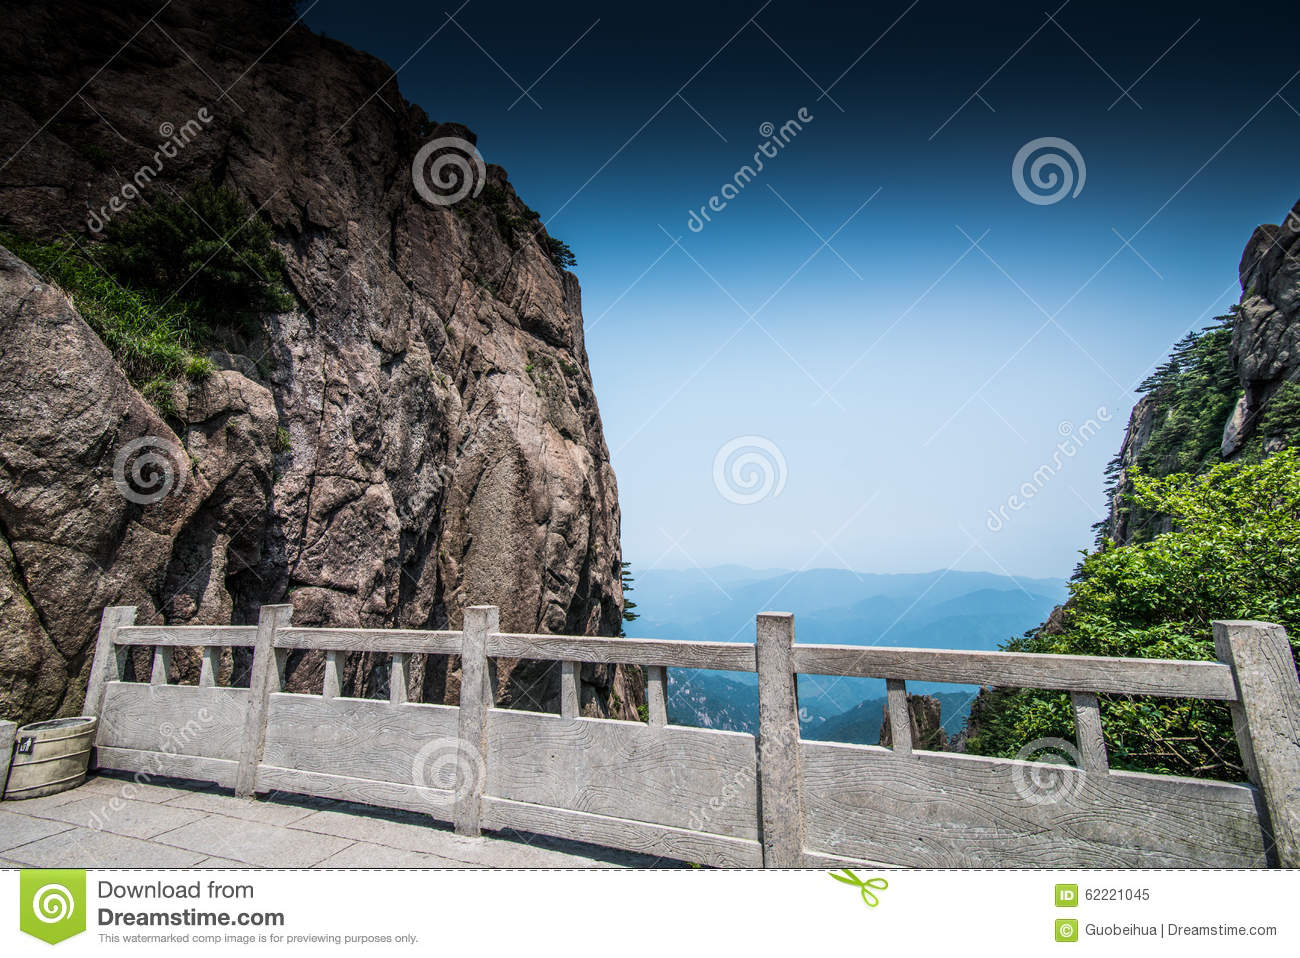 Huangshan Stock Photo - Image: 62221045